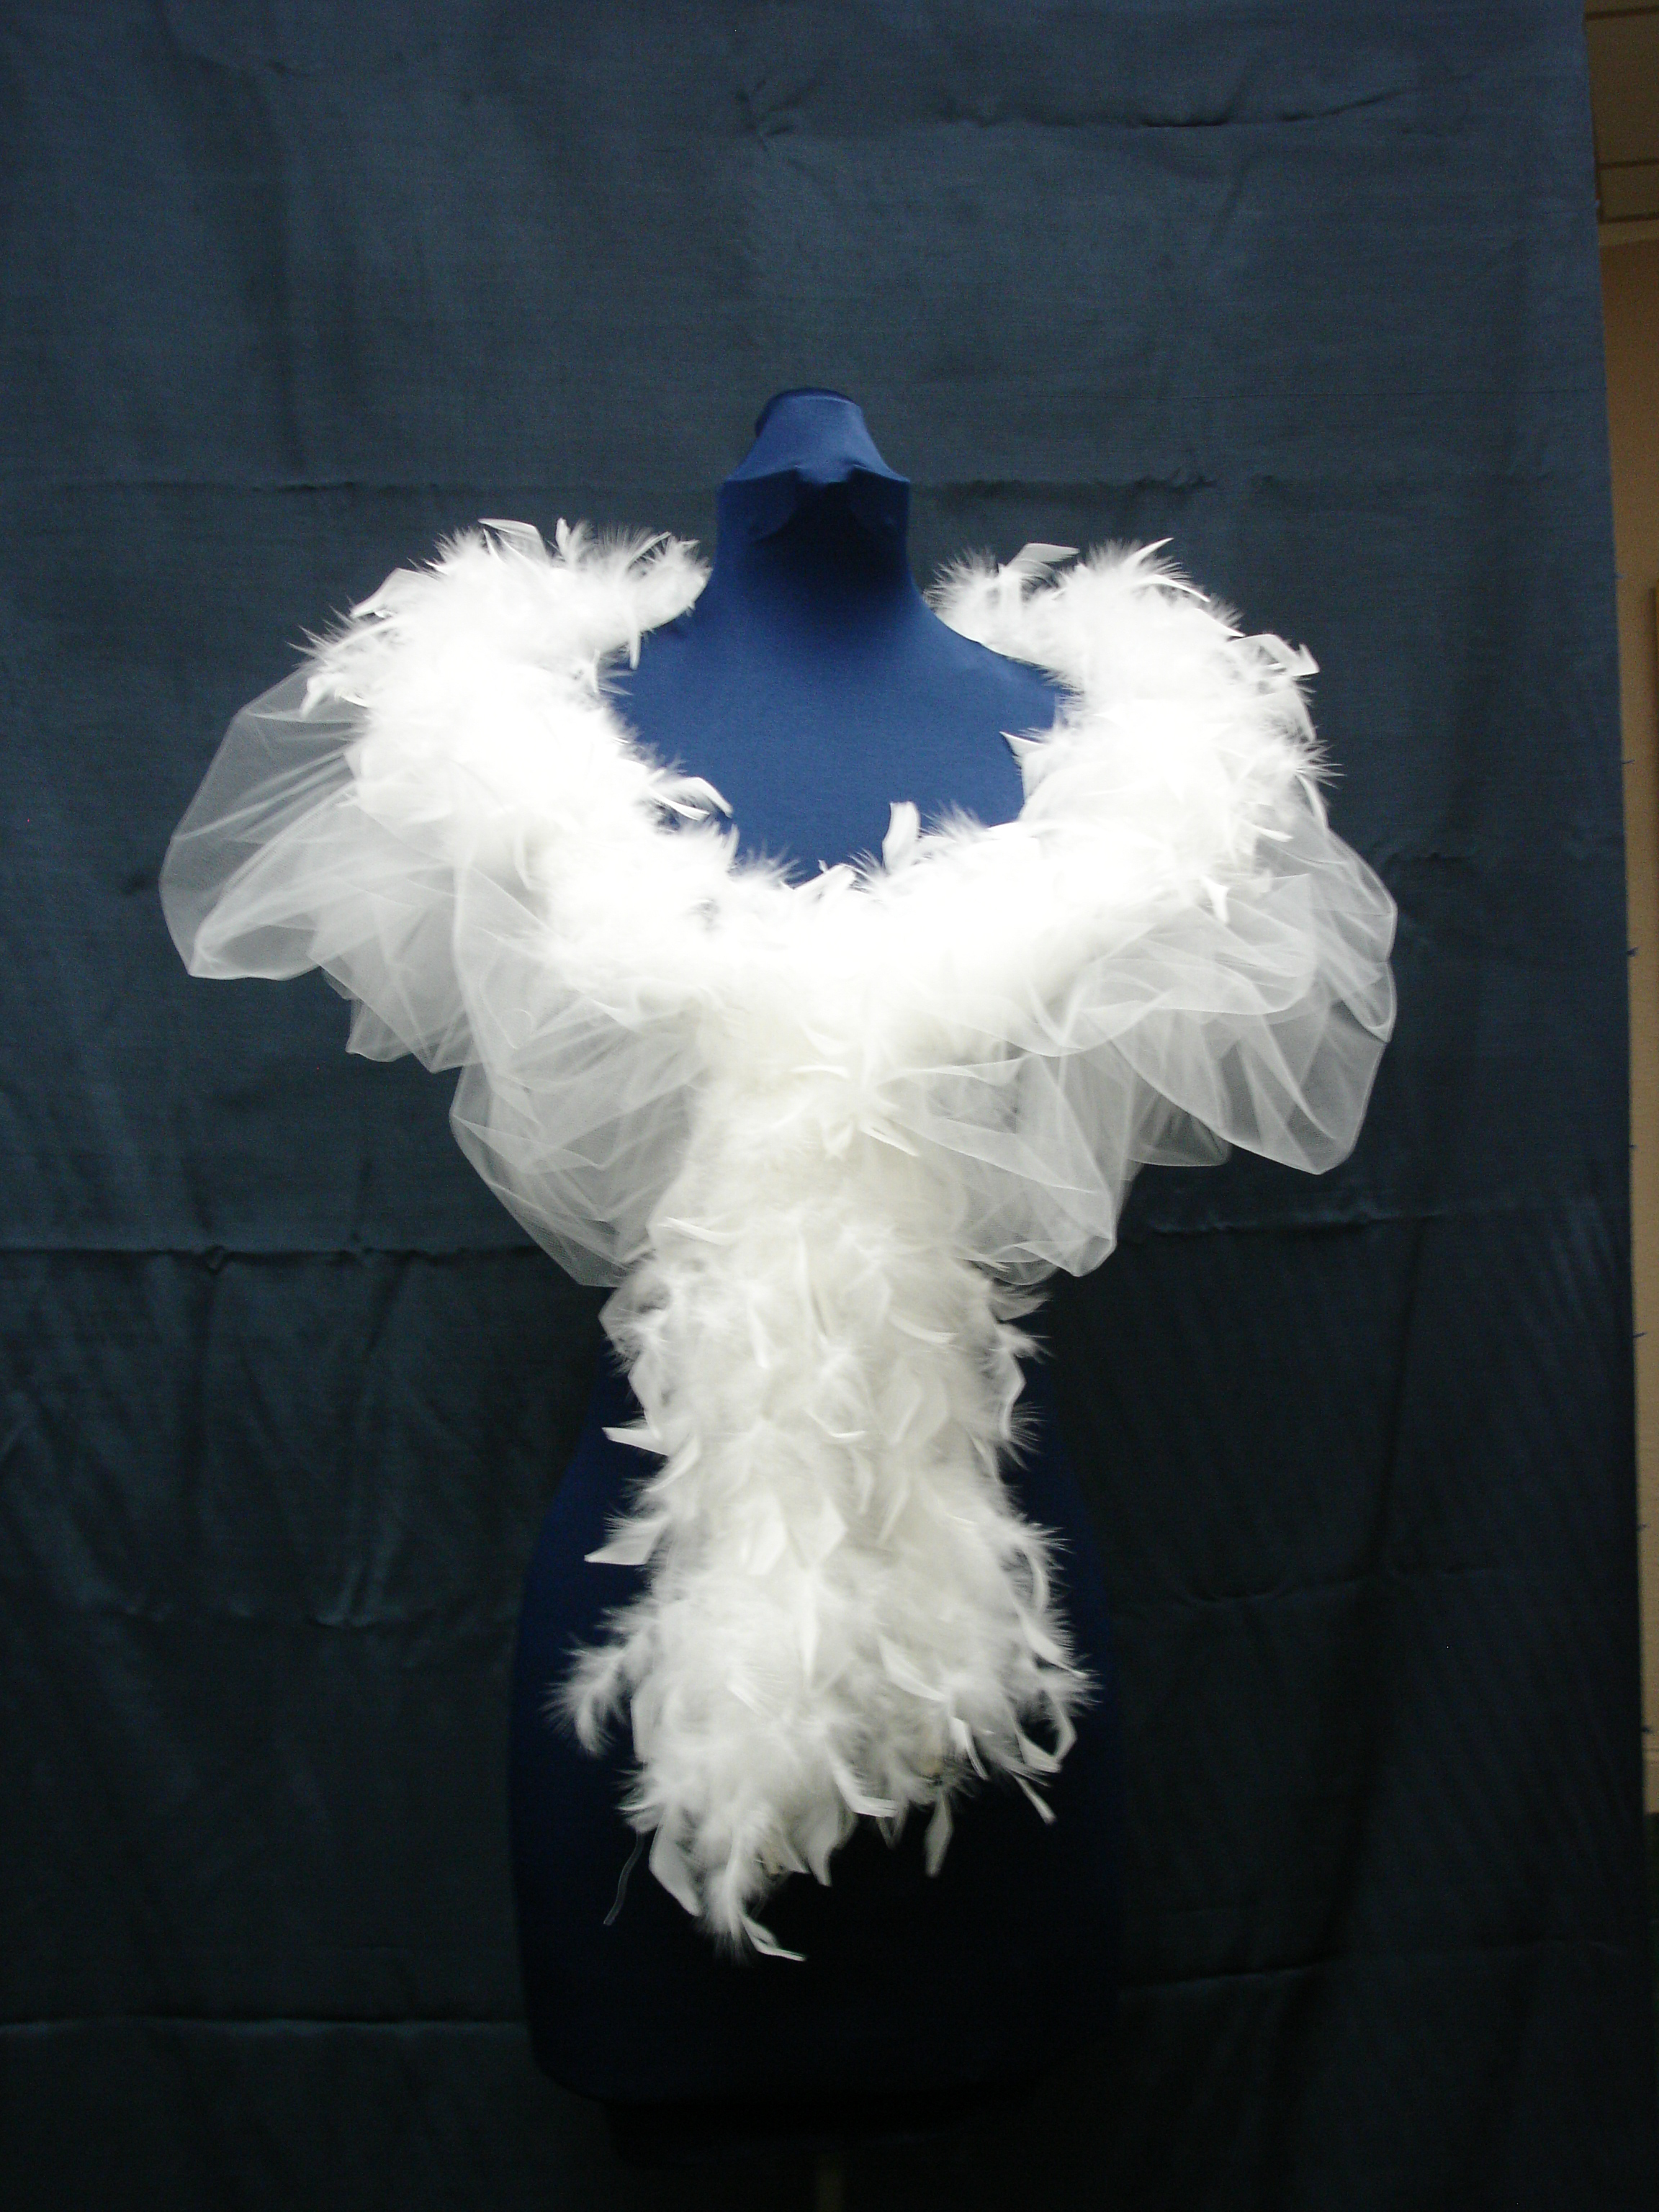 Beauty, Feathers, Accessories, Bridal, Tulle, Wrap, llc, Evening, Cape, Illusion, Shrug, Artistic veil design studio